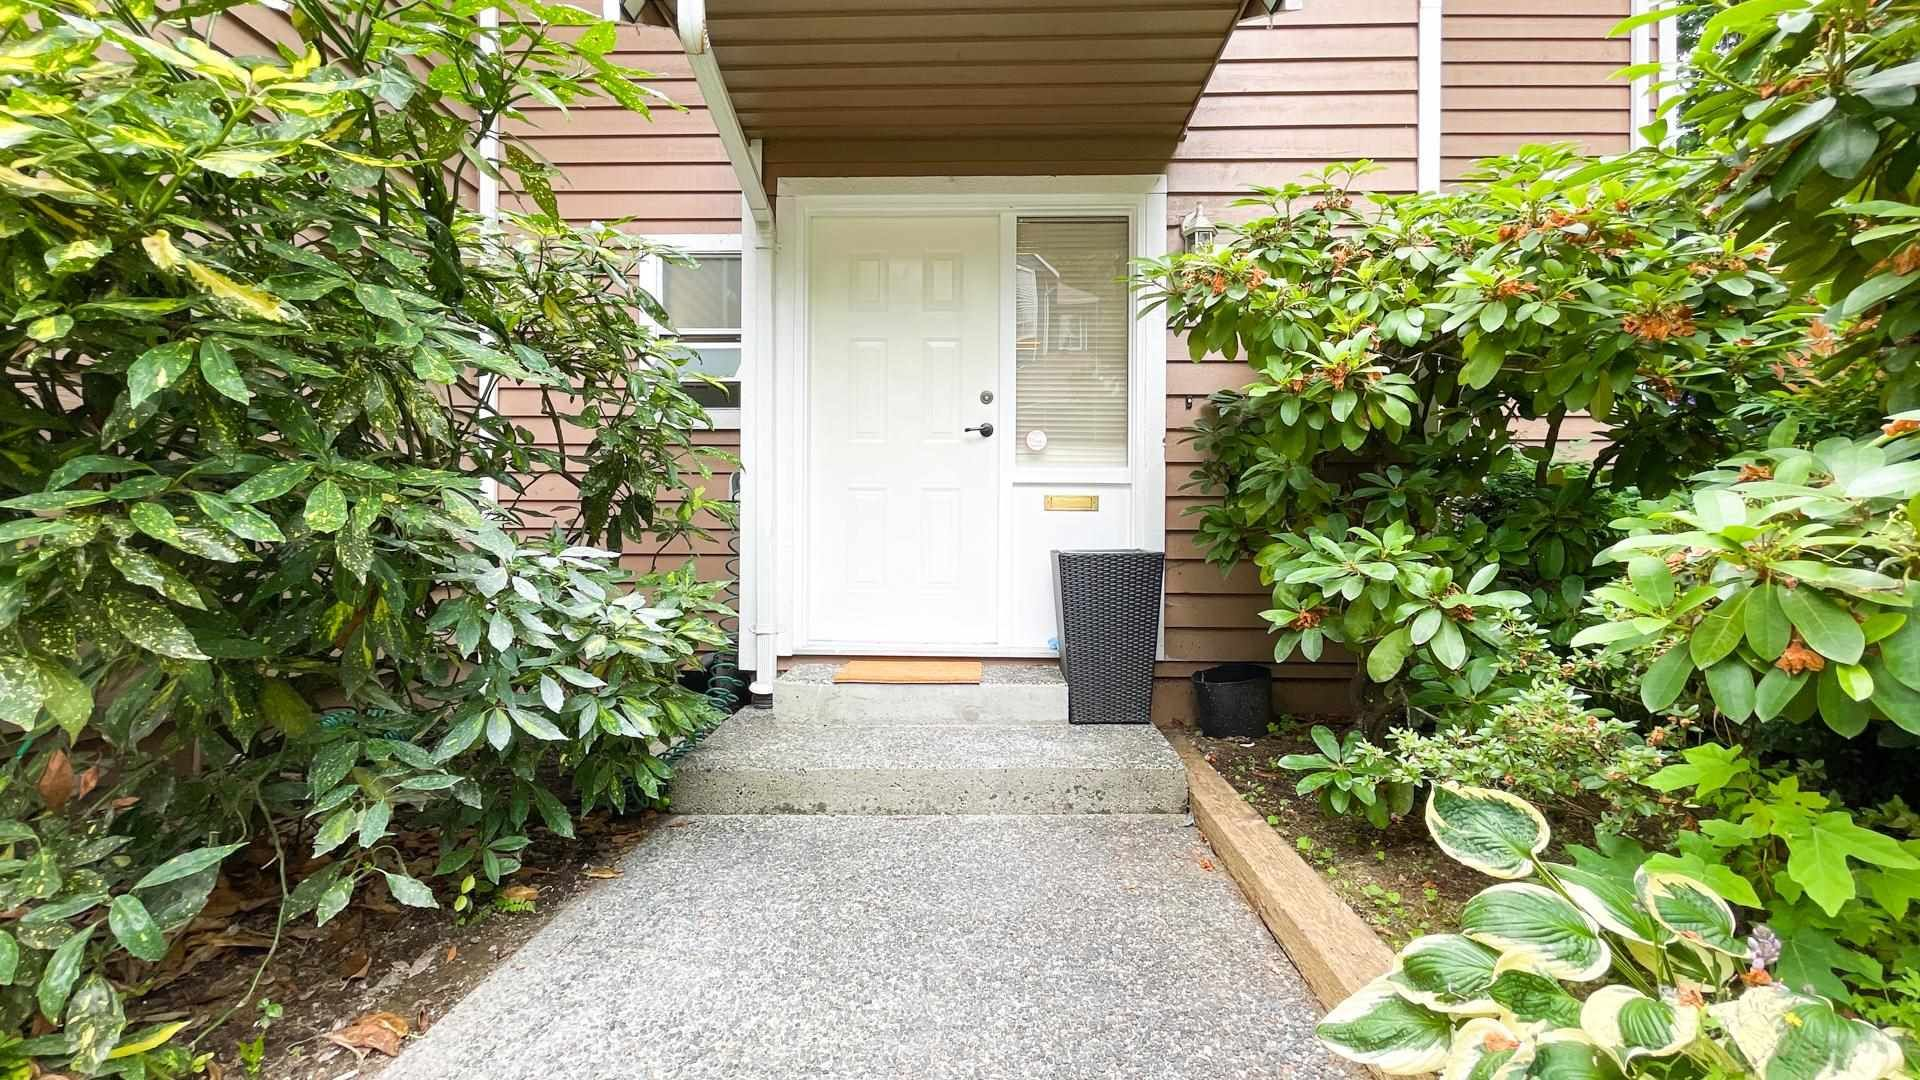 Photo 3: Photos: 66 9000 ASH GROVE CRESCENT in Burnaby: Forest Hills BN Townhouse for sale (Burnaby North)  : MLS®# R2603744